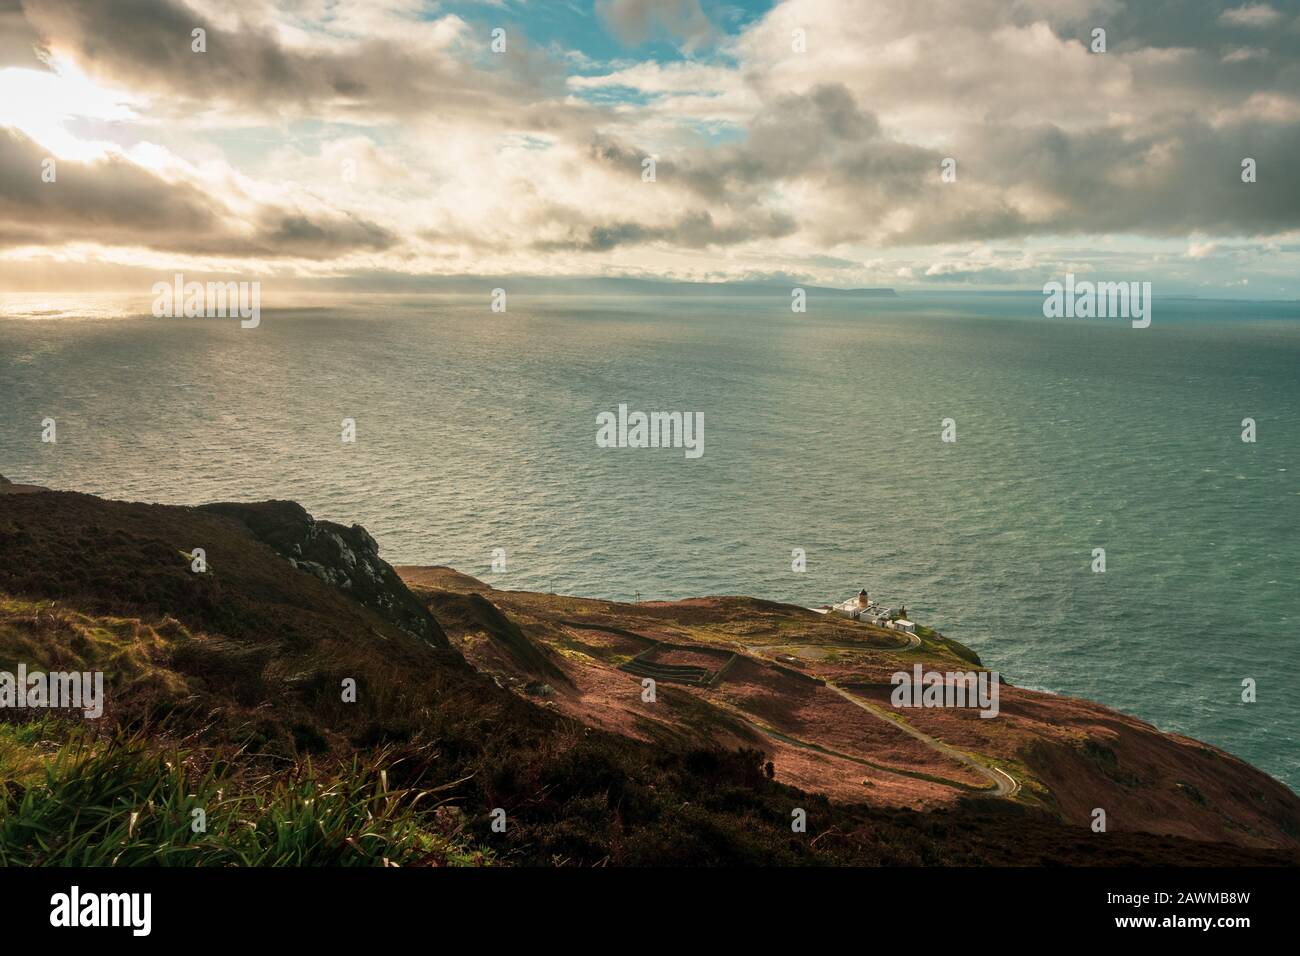 Views from the Mull of Kintyre to Northern Ireland and Rathlin island in dramatic weather conditions in winter, Scotland, UK Stock Photo